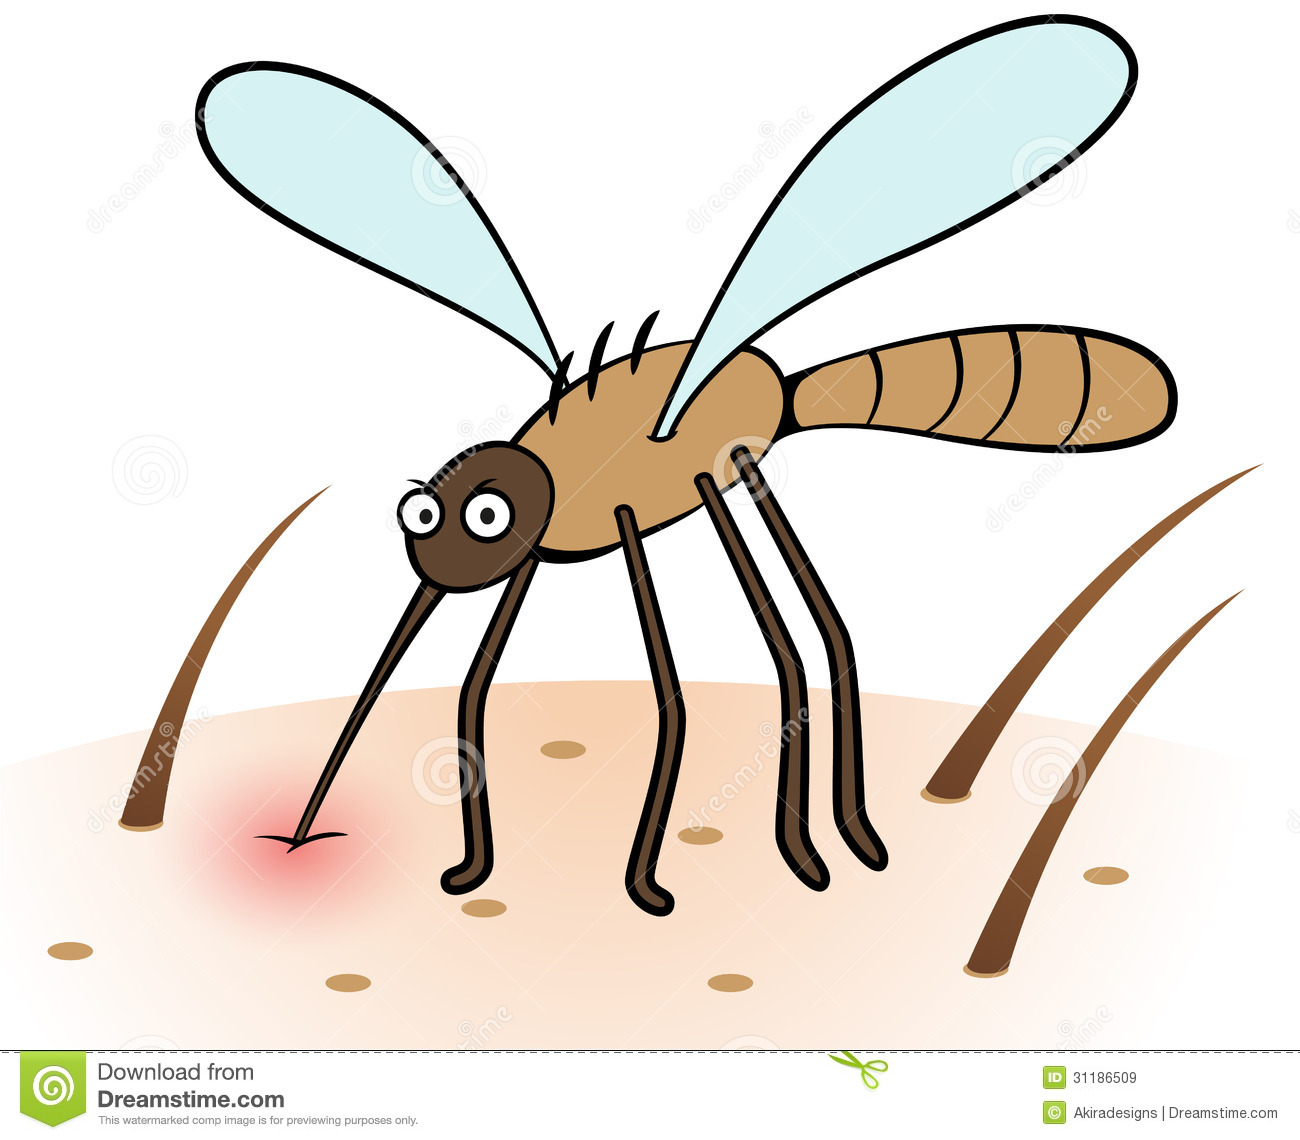 Insect bites clipart.